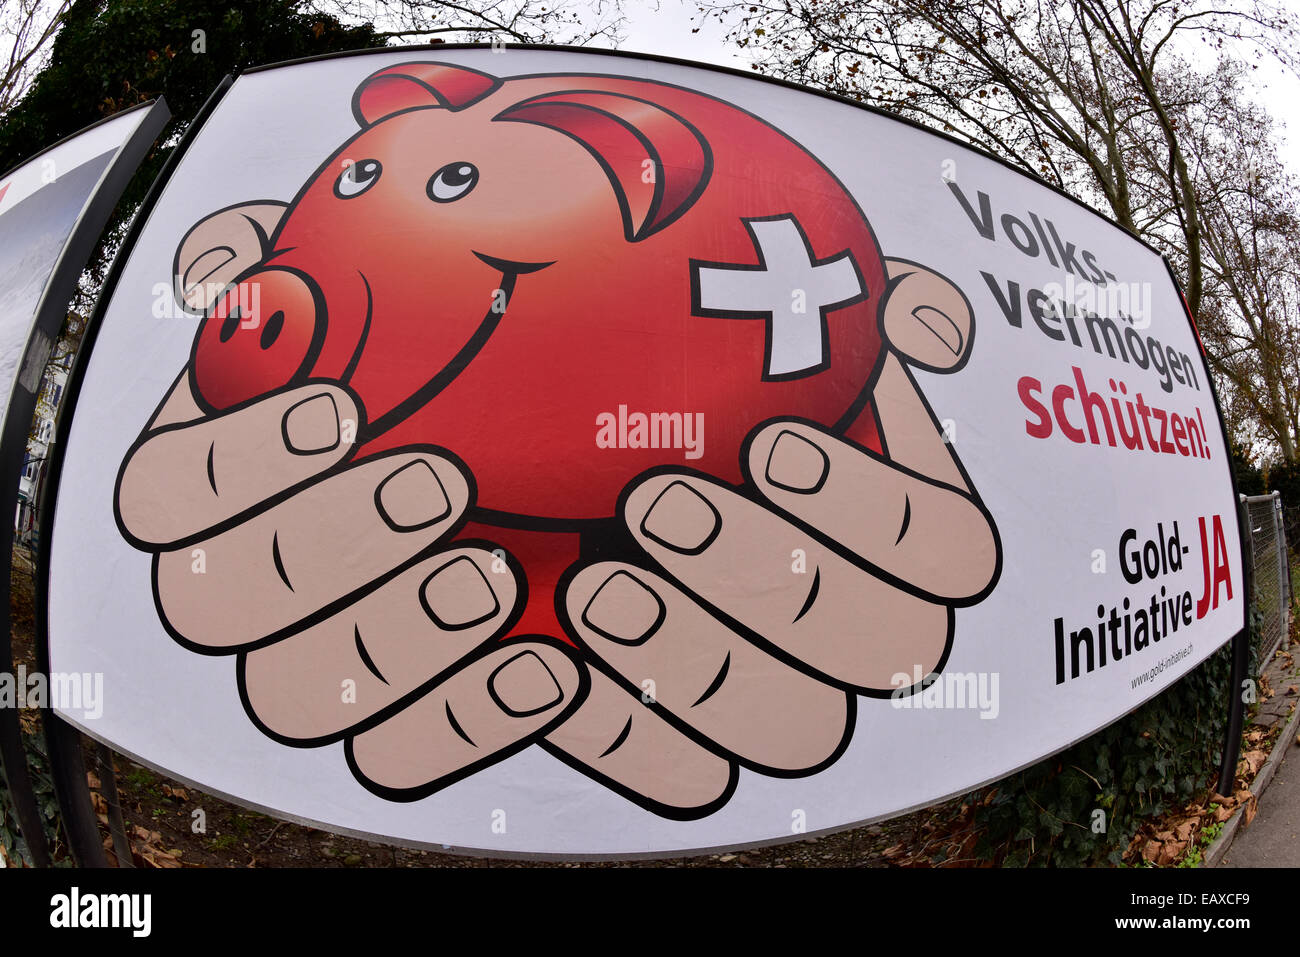 Zurich, Switzerland. 21st Nov, 2014. A large referendum campaign poster for the Swiss 'Gold Initiative' - Stock Image